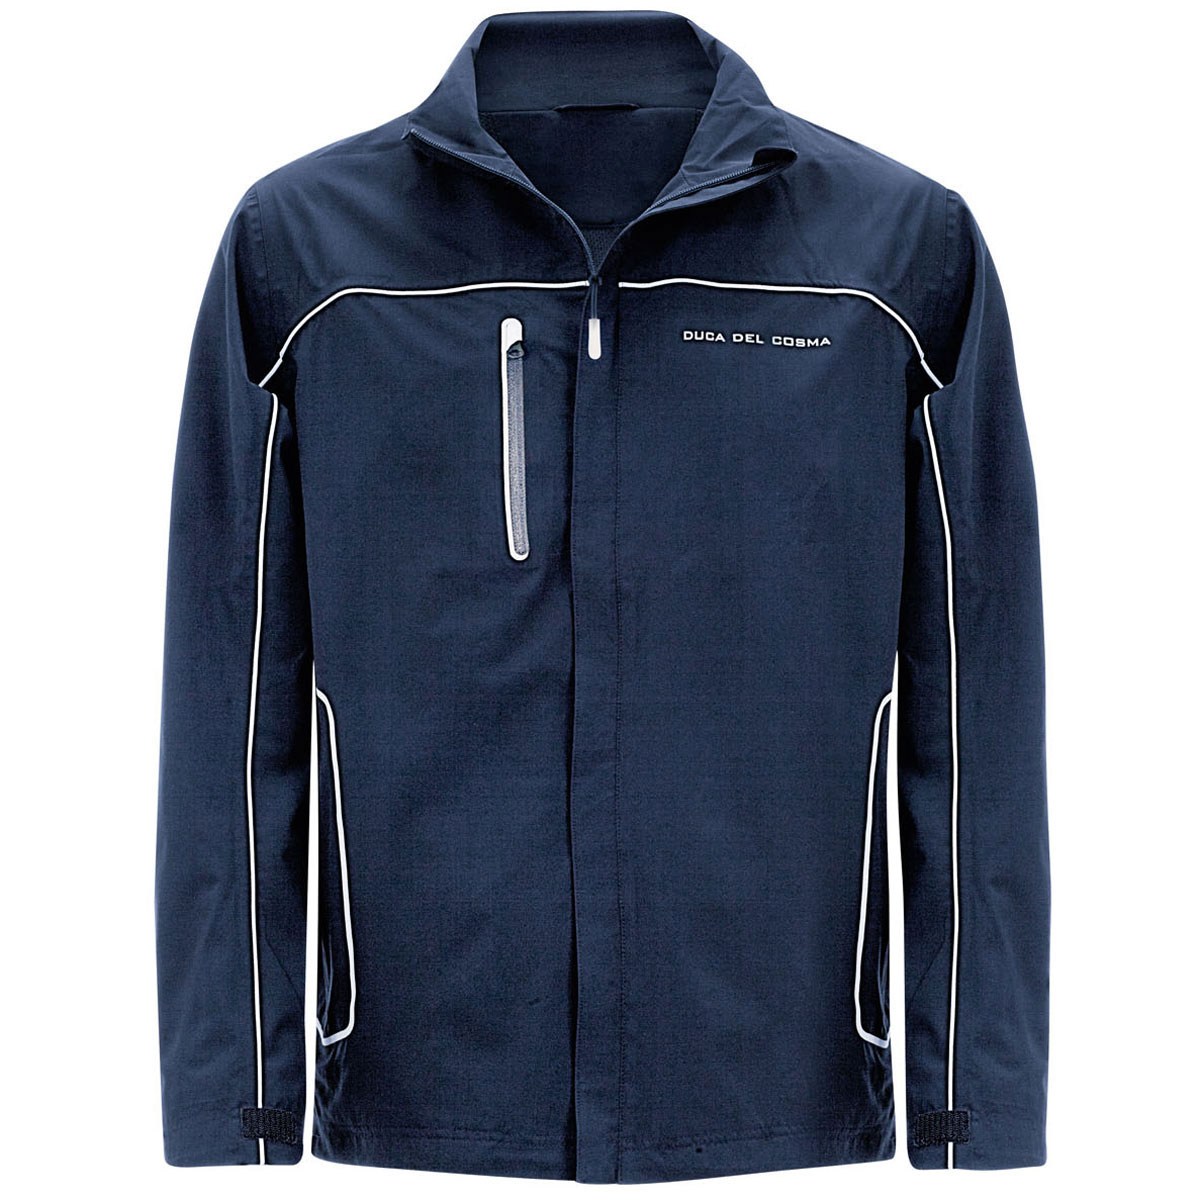 Shop North Face Jackets at The North Face Outlet coolvloadx4.ga Jackets Clearance is a crowd favorite with a ton of colors to choose coolvloadx4.ga to 70% OFF! No Tax,Fast Shipping!